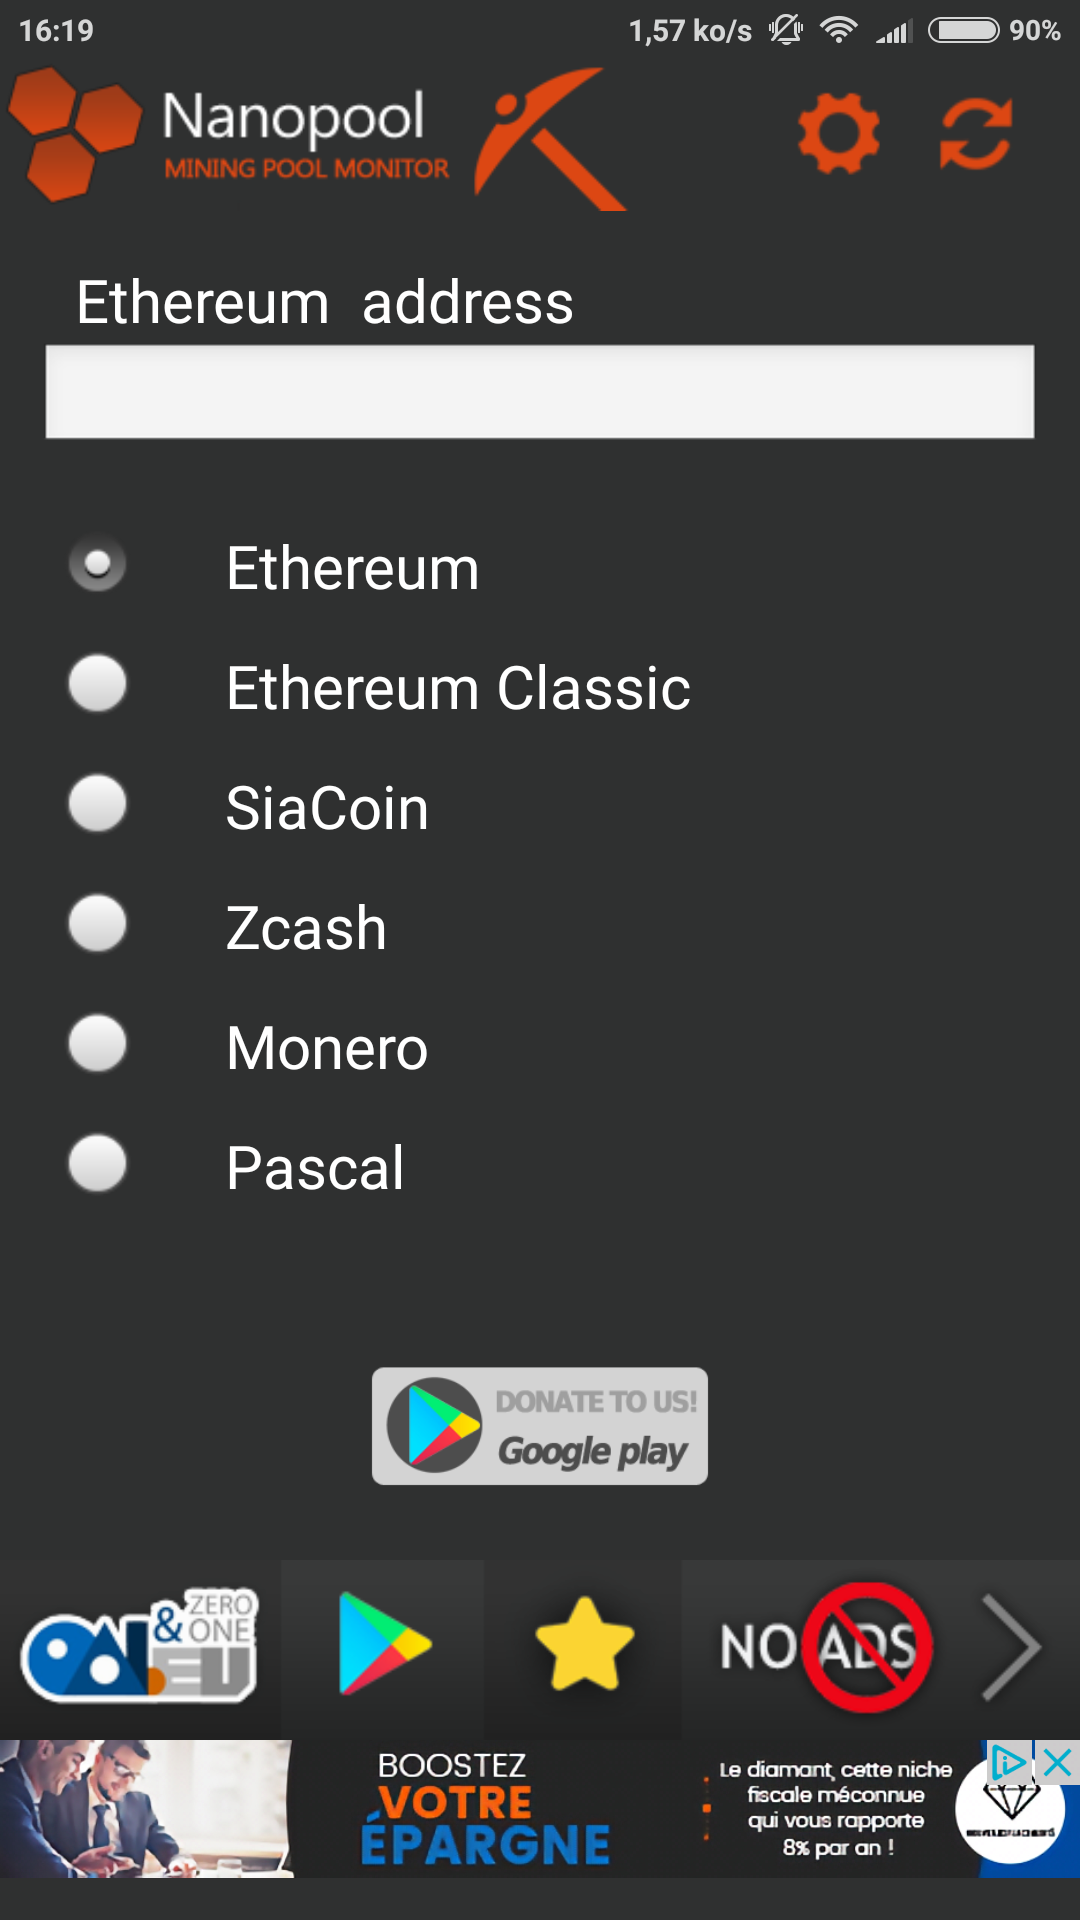 what cryptocurrencies can i mine with claymore zcash miner